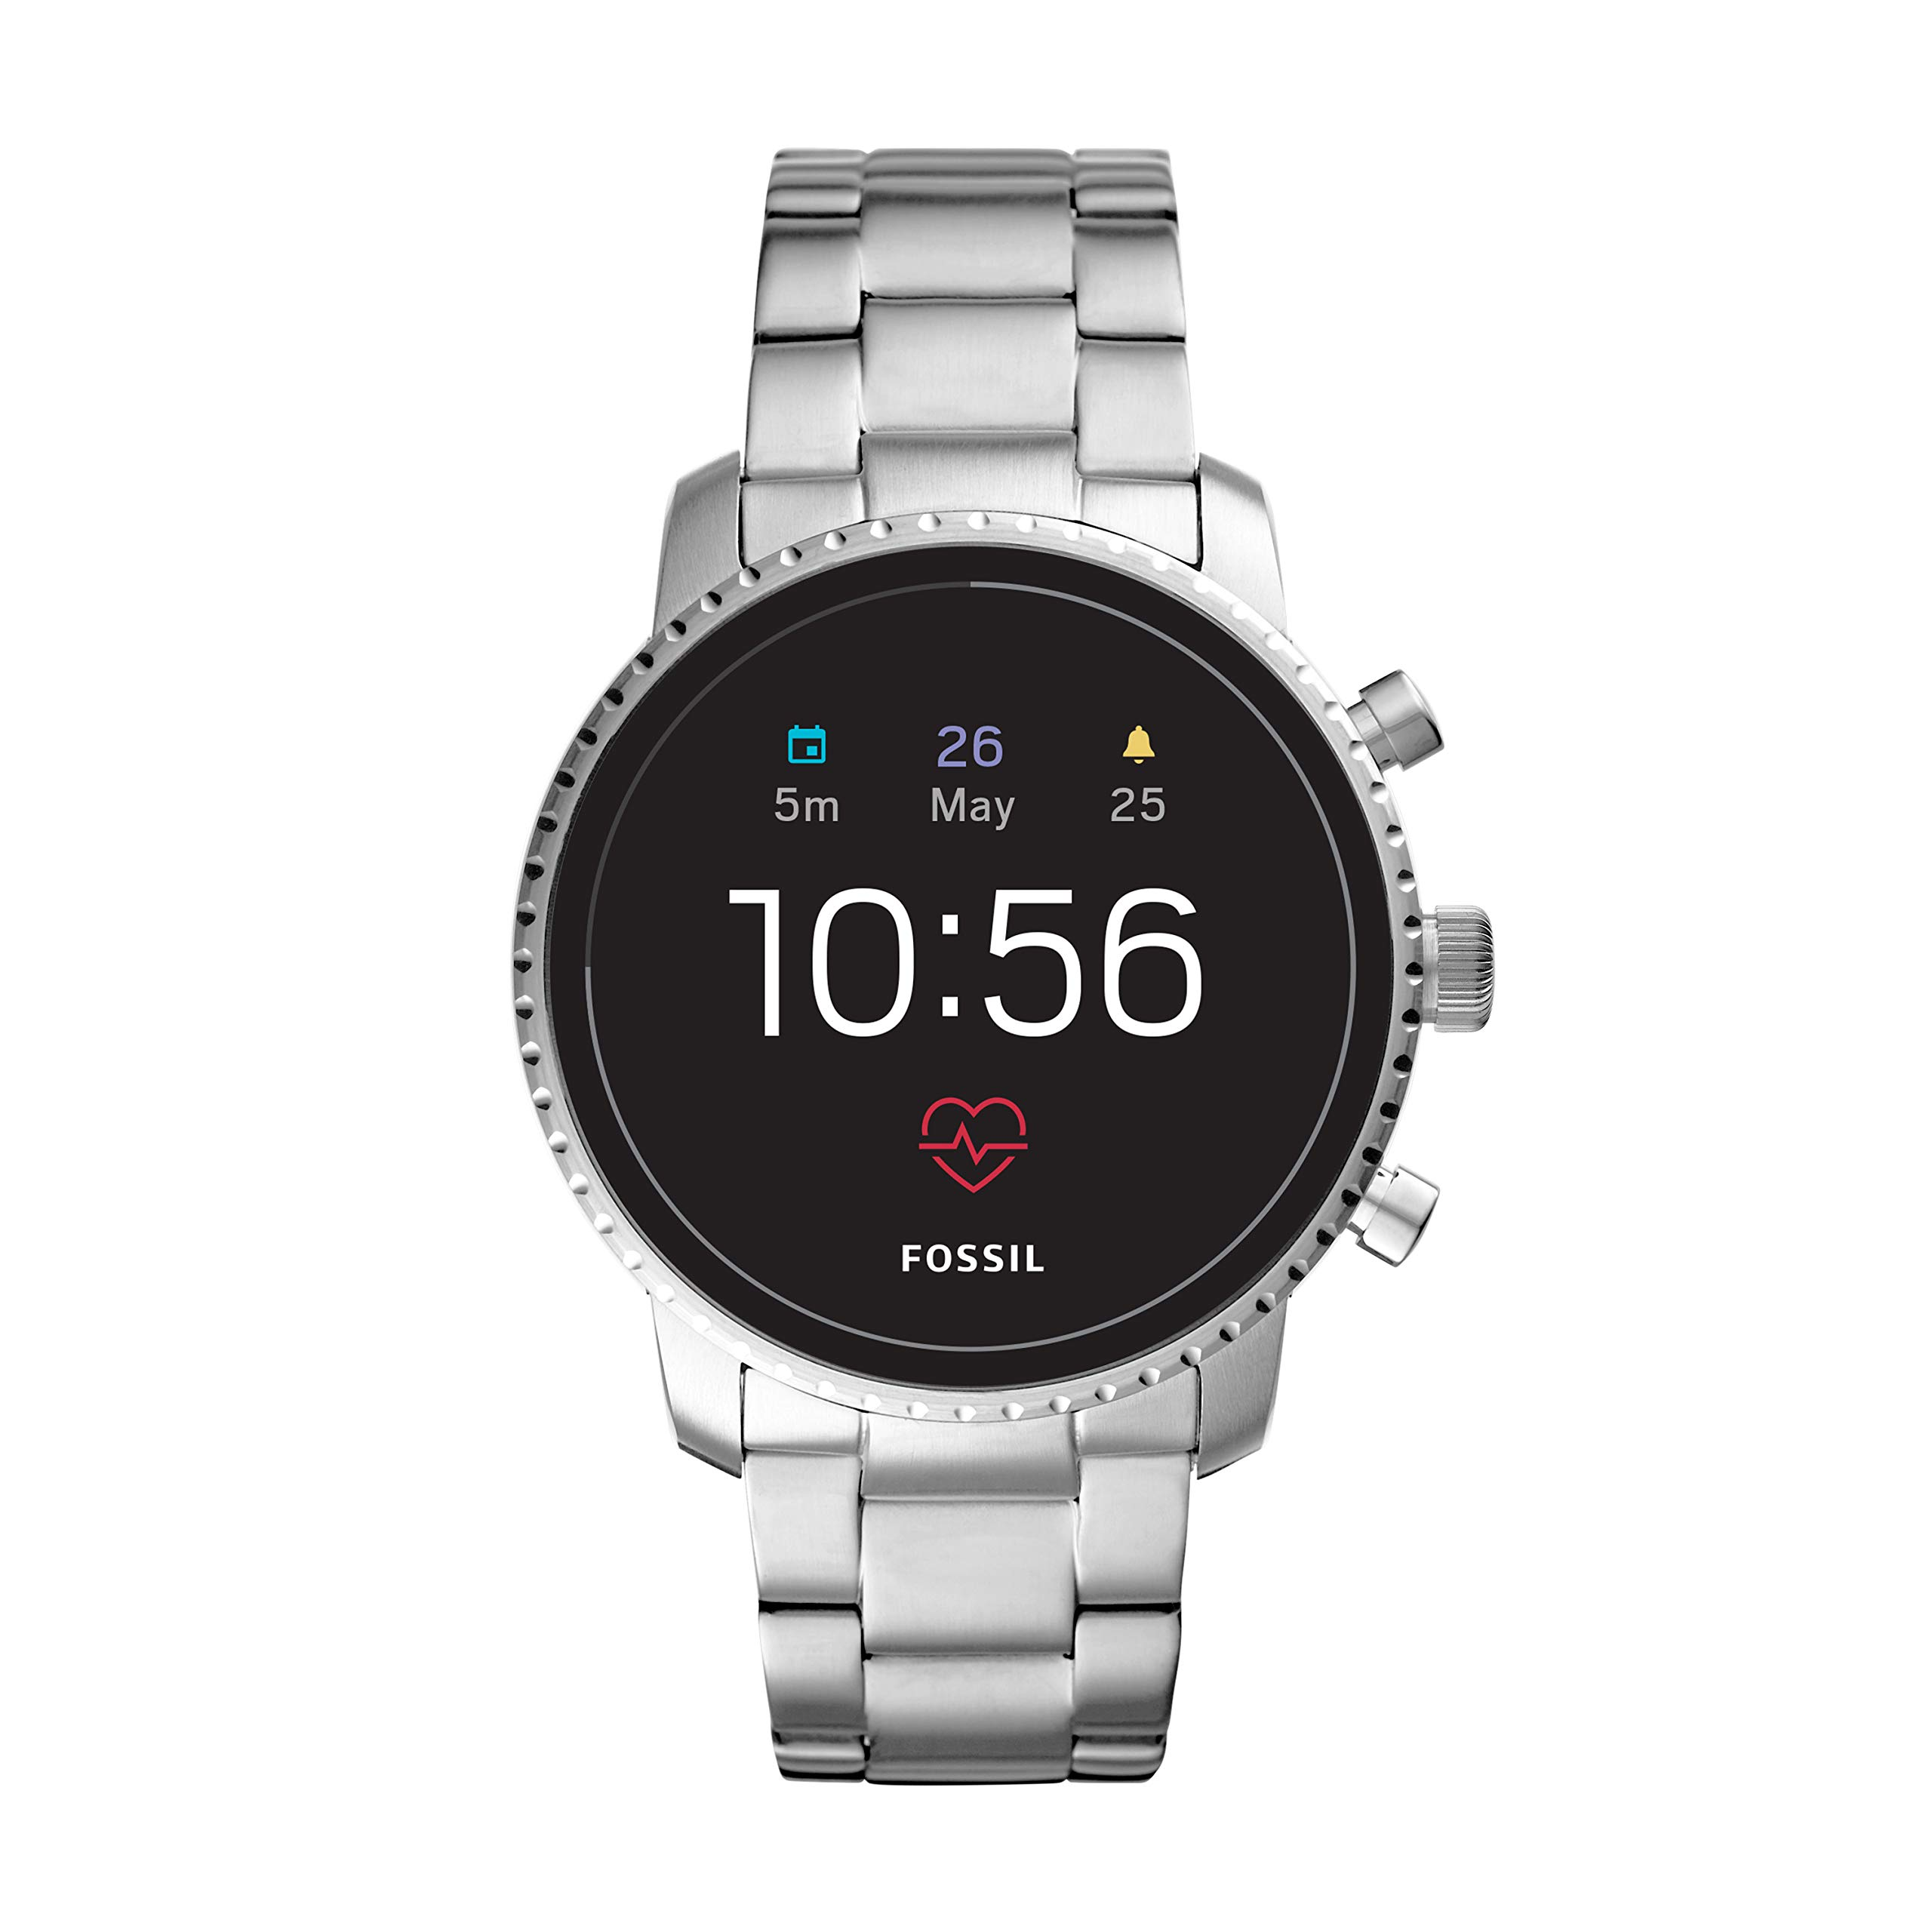 Fossil Men's Gen 4 Explorist HR Stainless Steel Touchscreen Smartwatch, Color: Silver (Model: FTW4011)